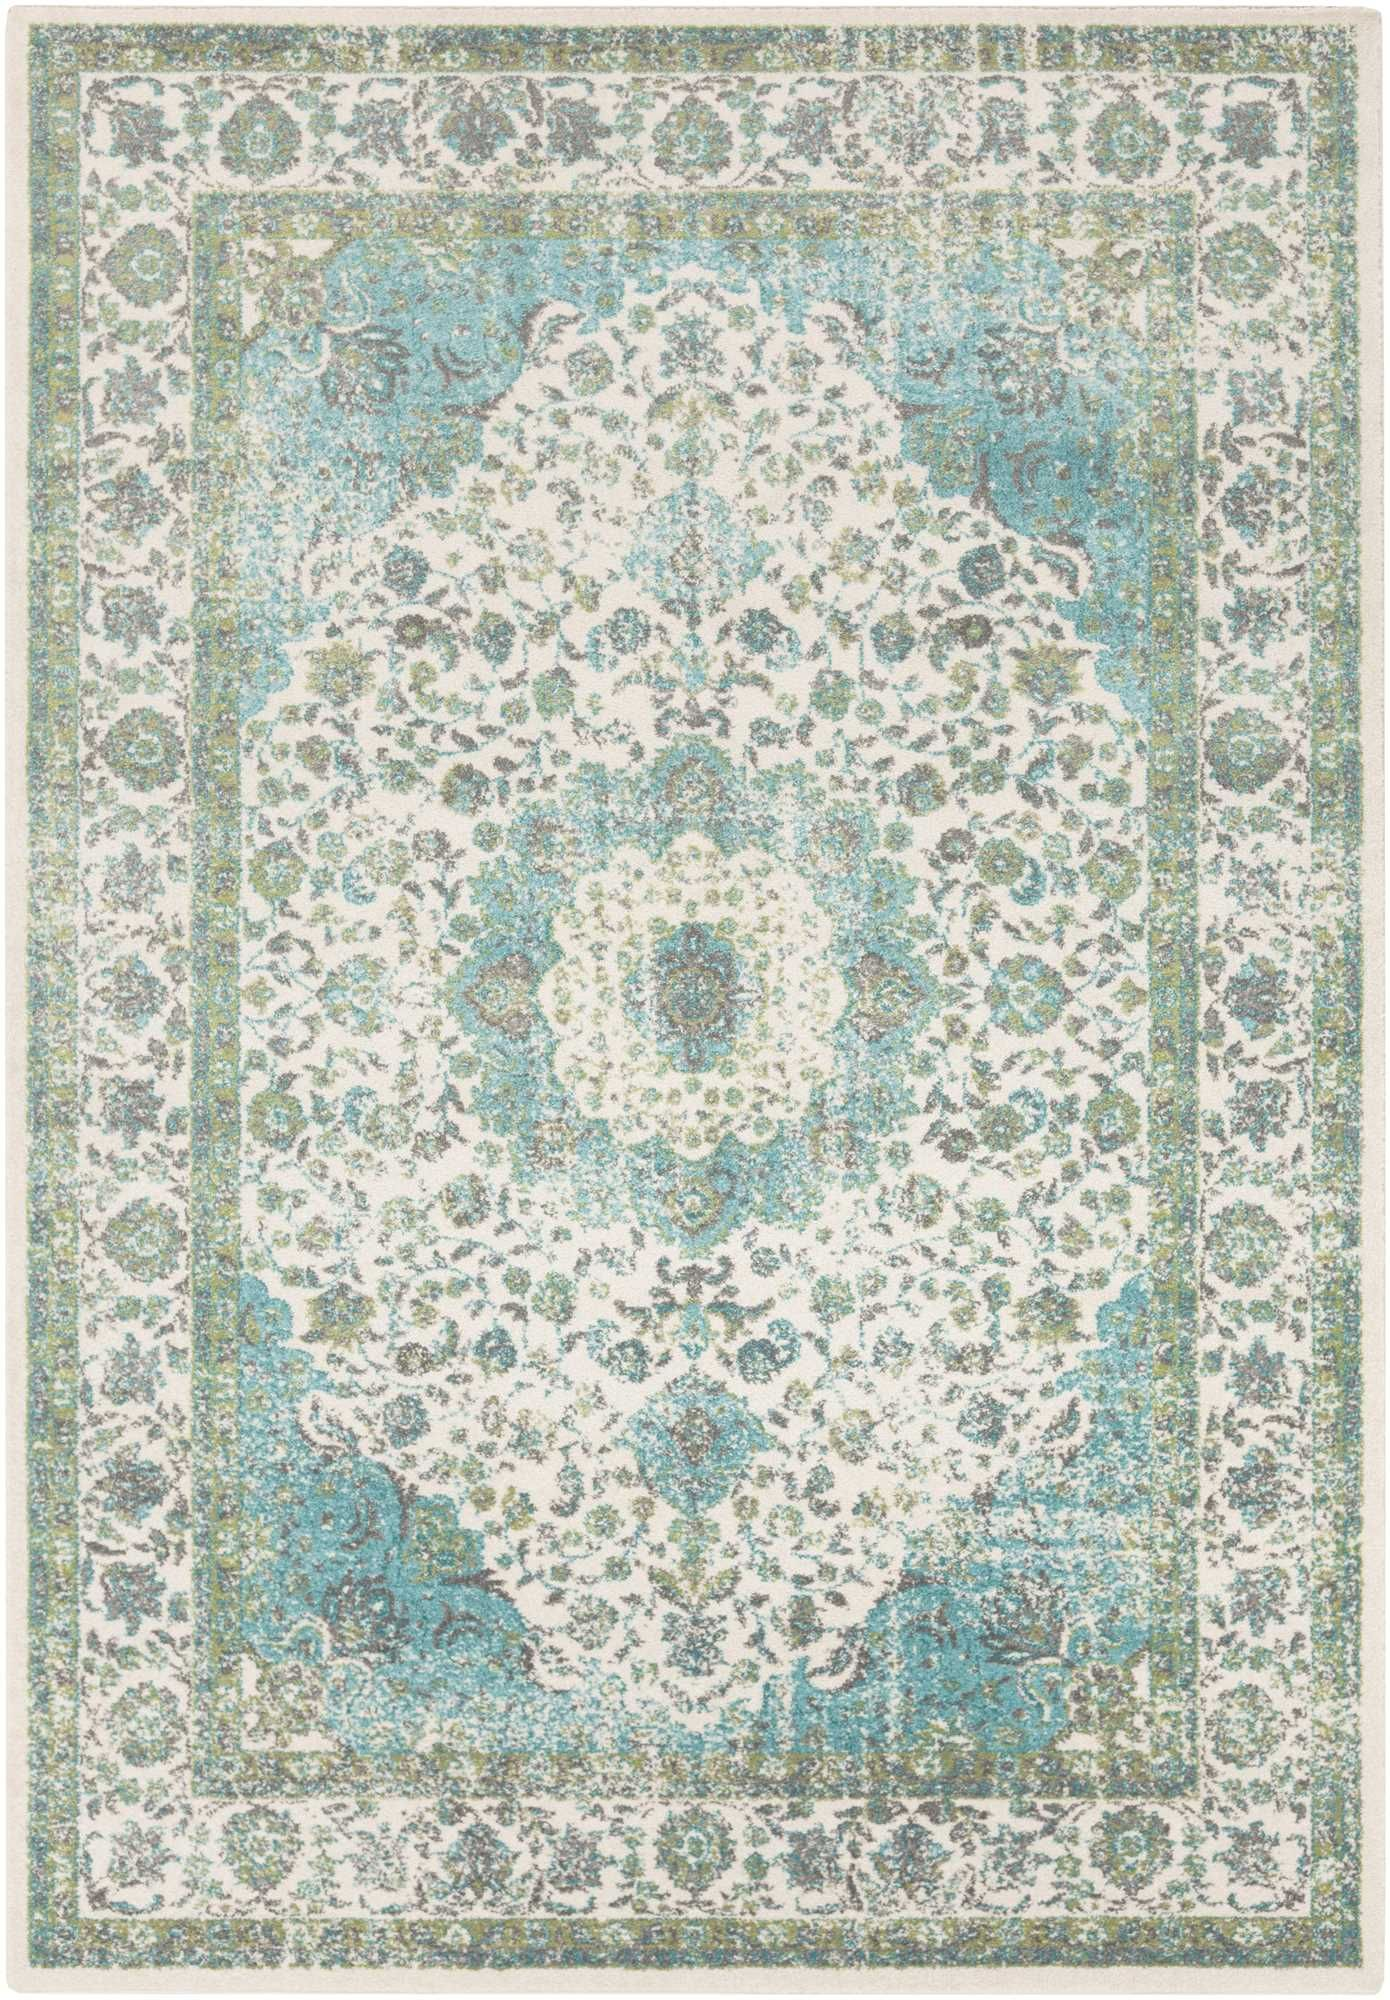 Area Rugs In Many Styles Including Contemporary Braided Outdoor And Flokati Shag Rugs Buy Rugs At America S Home Decorating Sup Rugs Rugs On Carpet Area Rugs